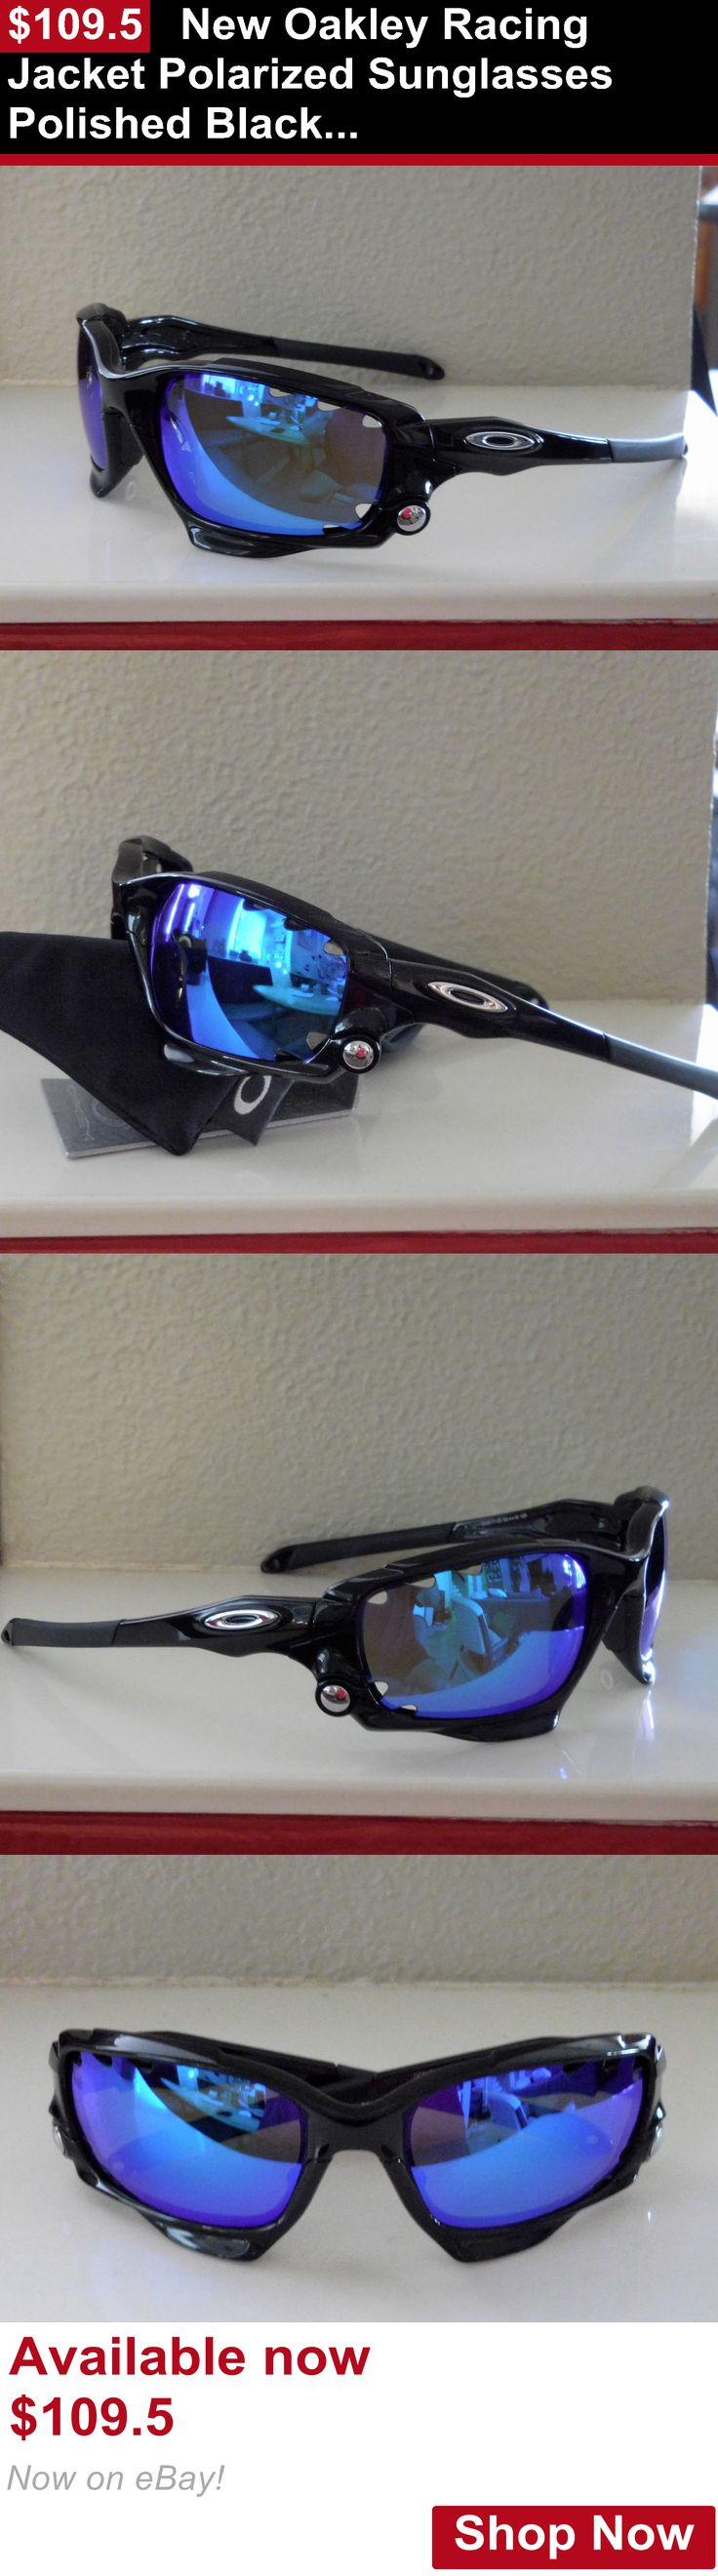 Unisex accessories: New Oakley Racing Jacket Polarized Sunglasses Polished Black / Blue Vented Lens BUY IT NOW ONLY: $109.5